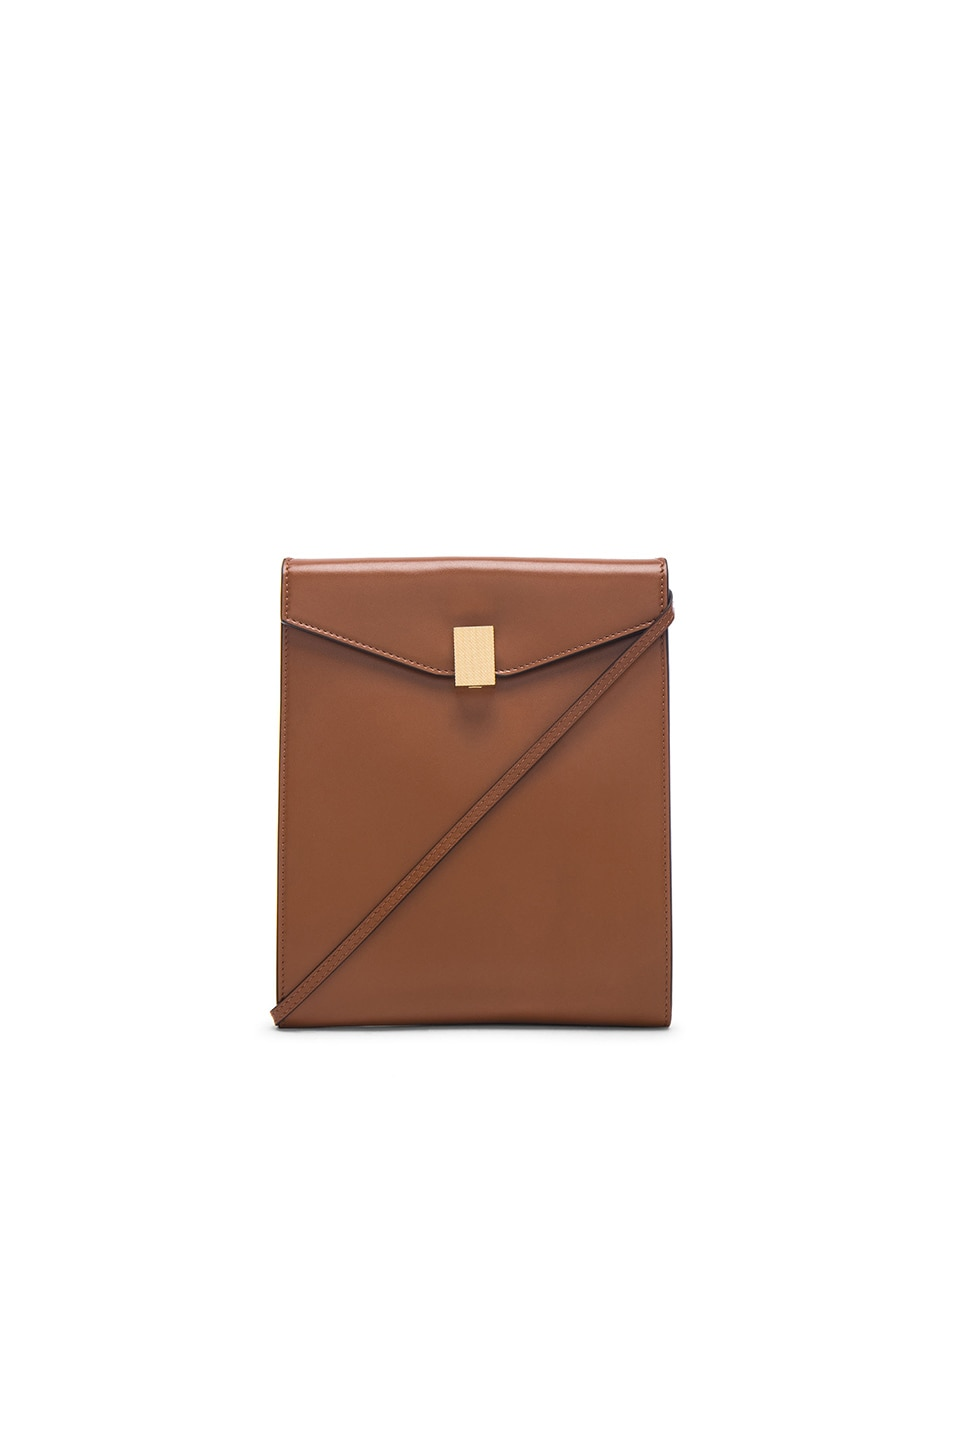 Image 1 of Victoria Beckham Postino Bag in Couoio